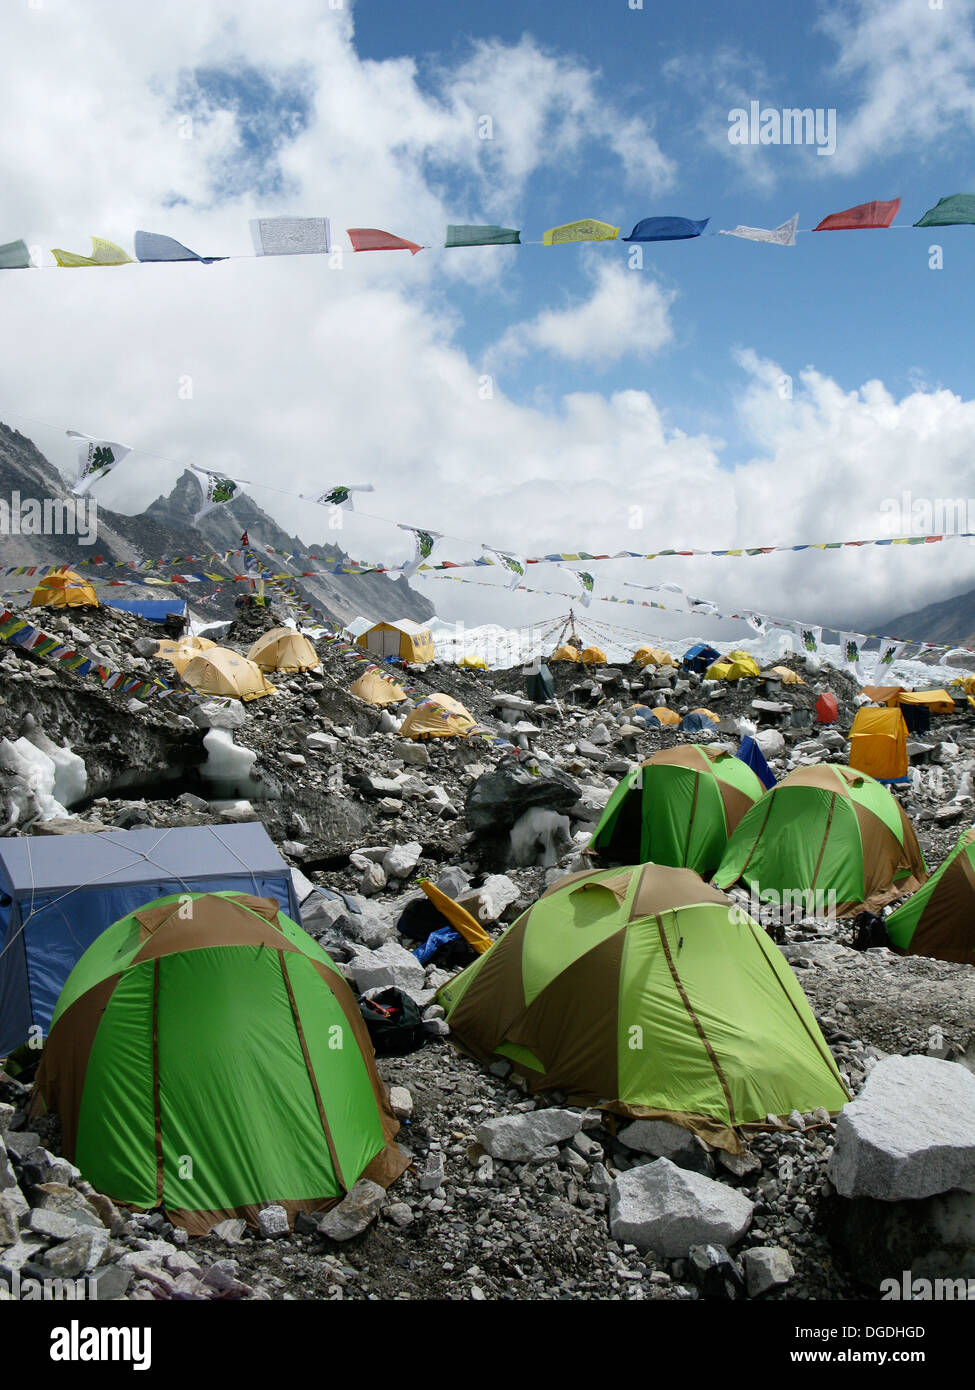 The colorful tents of Everest Base Camp dot the landscape at the foot of Mount Everest in Nepal. - Stock Image